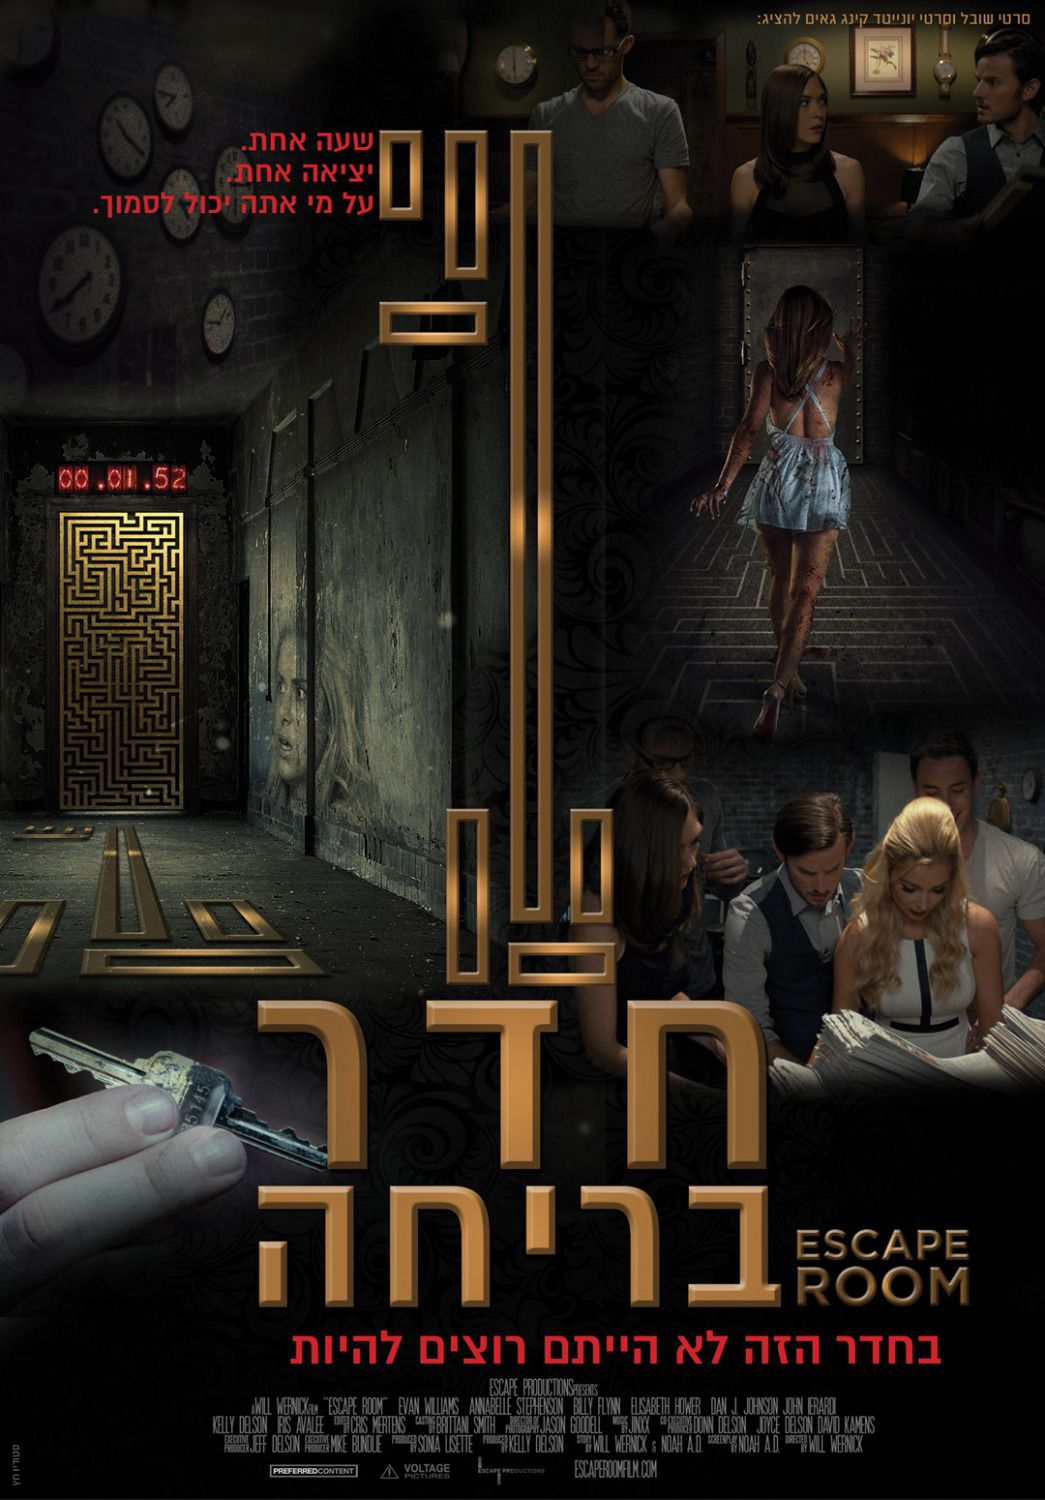 Escape Room - Evan Williams, Elisabeth Hower - film poster